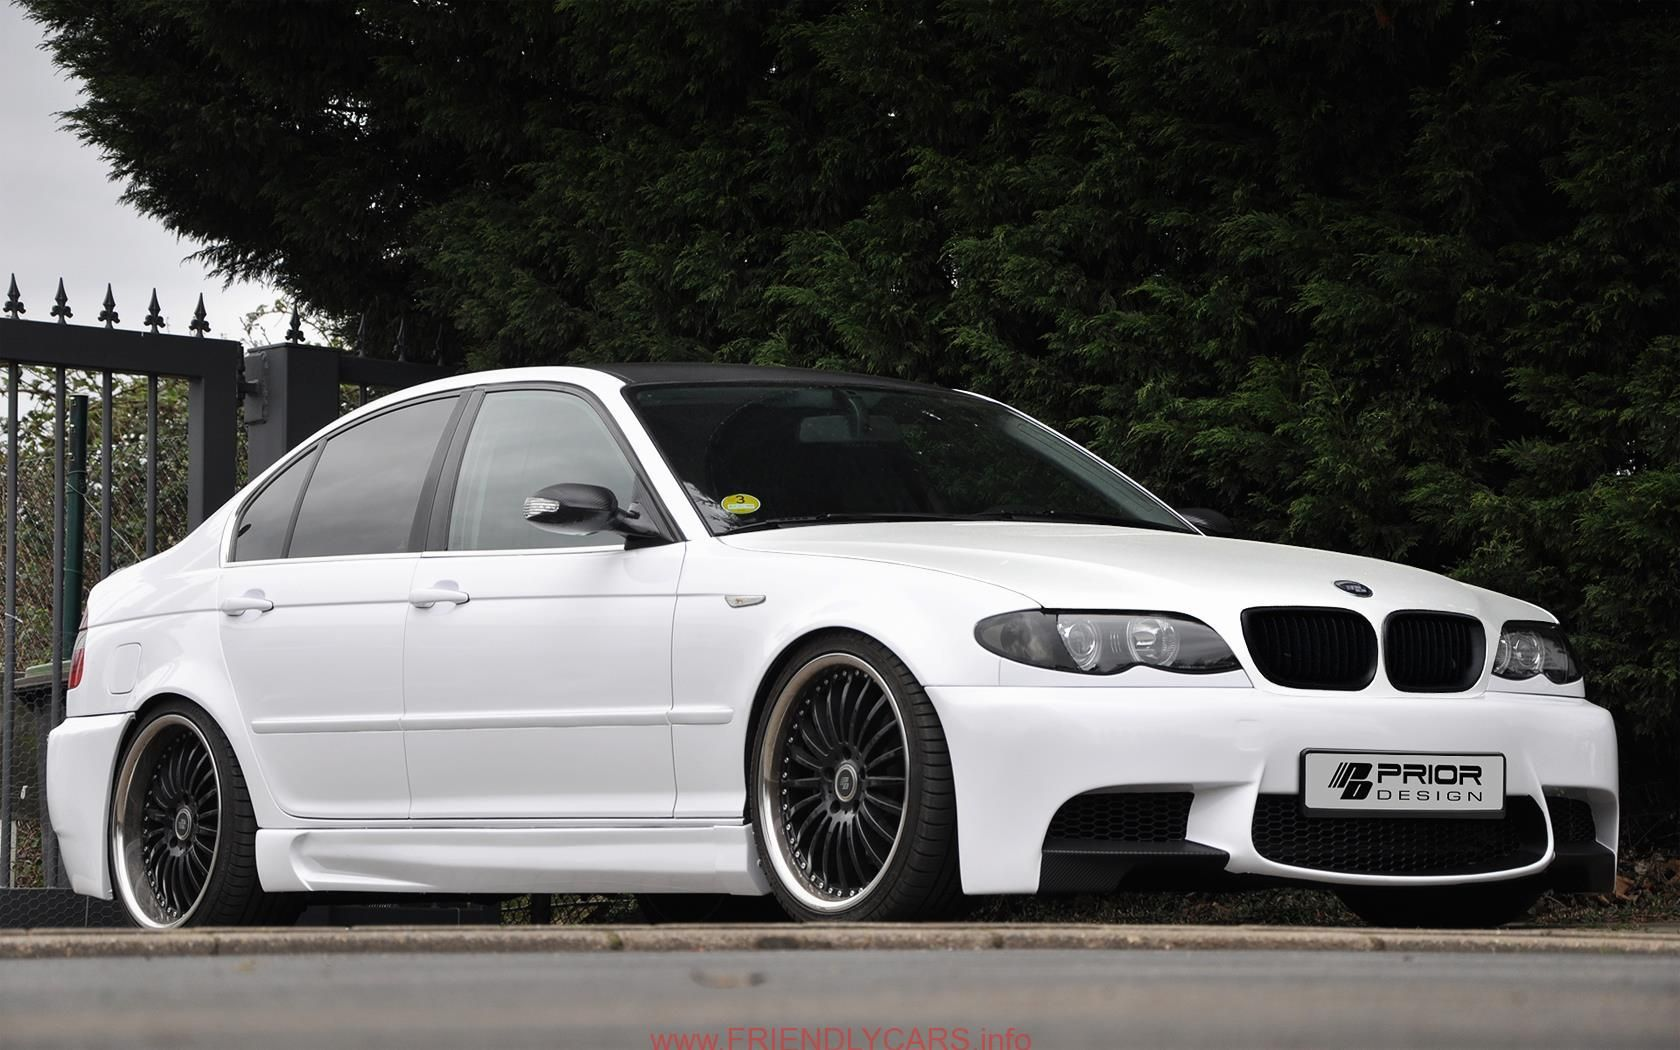 Awesome Bmw M3 E46 Wide Body Kit Car Images Hd Bmw 3 Series E46